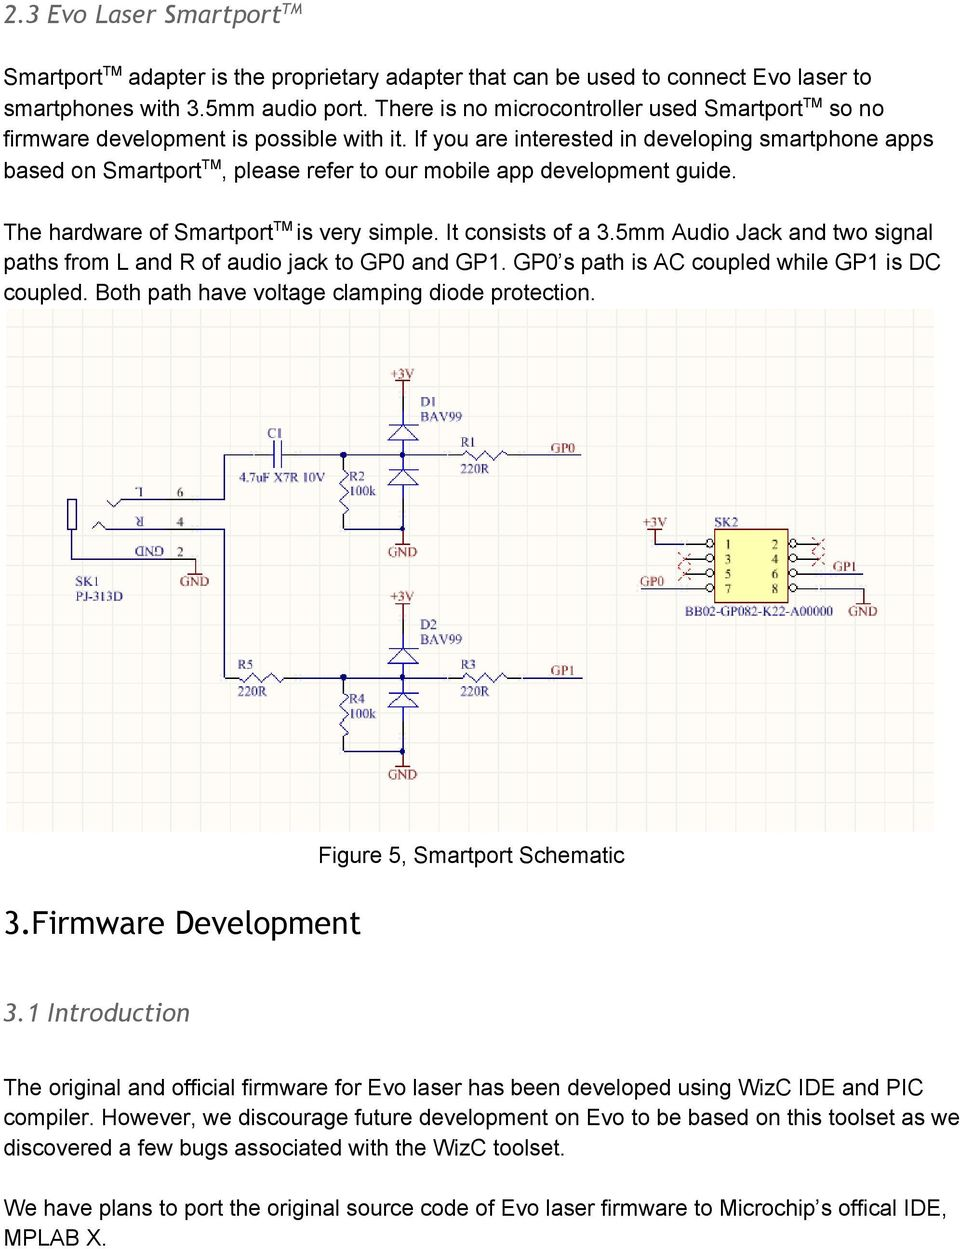 Evo Laser Firmware Developer S Manual Pdf Simple Wiring Diagram If You Are Interested In Developing Smartphone Apps Based On Smartport Tm Please Refer To